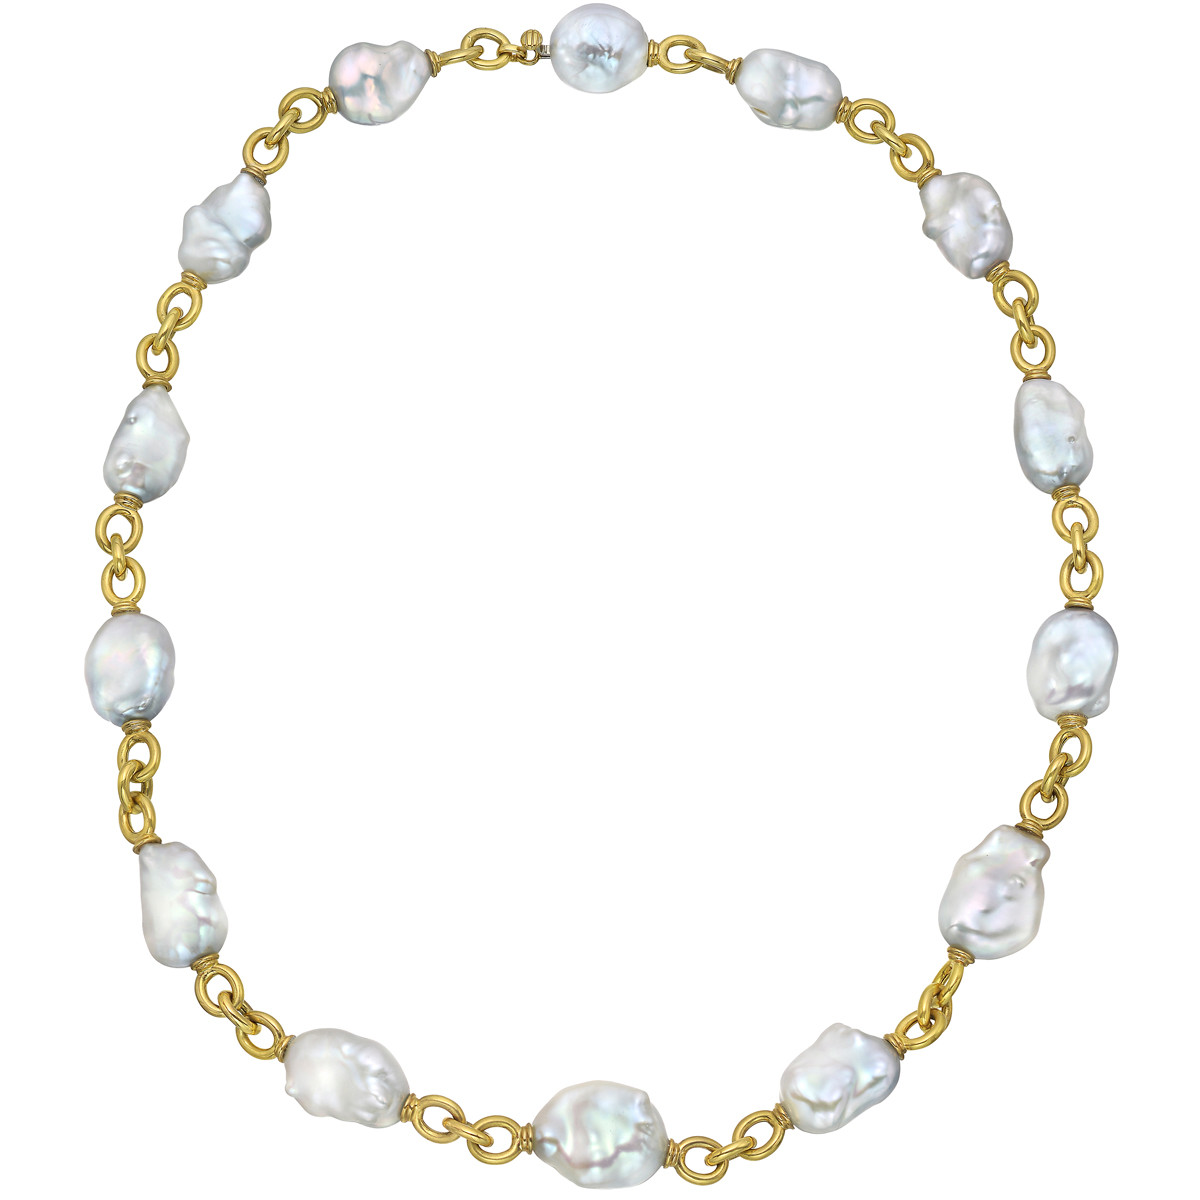 18k Yellow Gold & Baroque Pearl Link Necklace